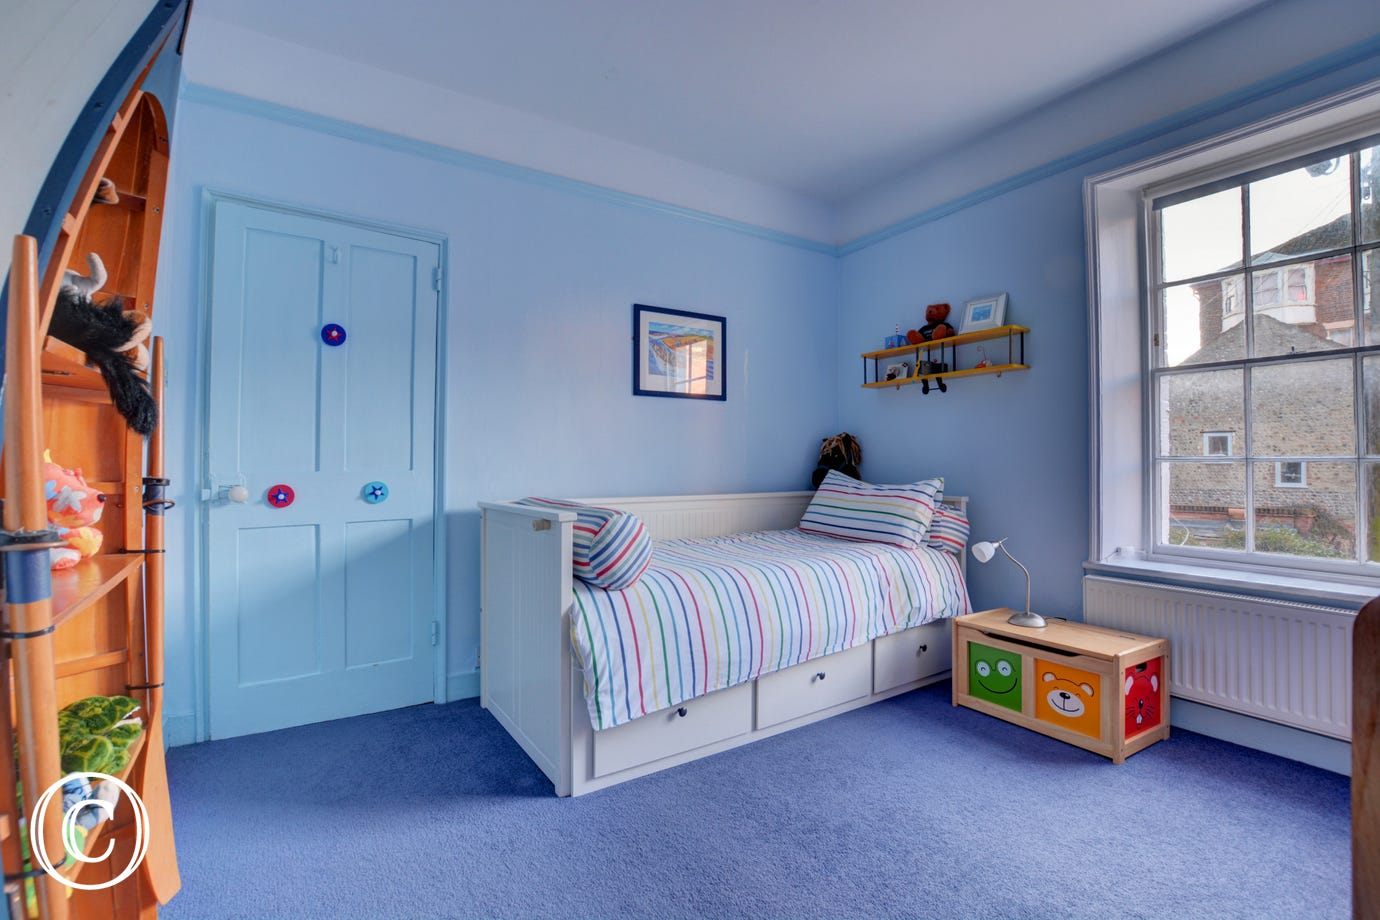 A single bedded room with a seaside theme.